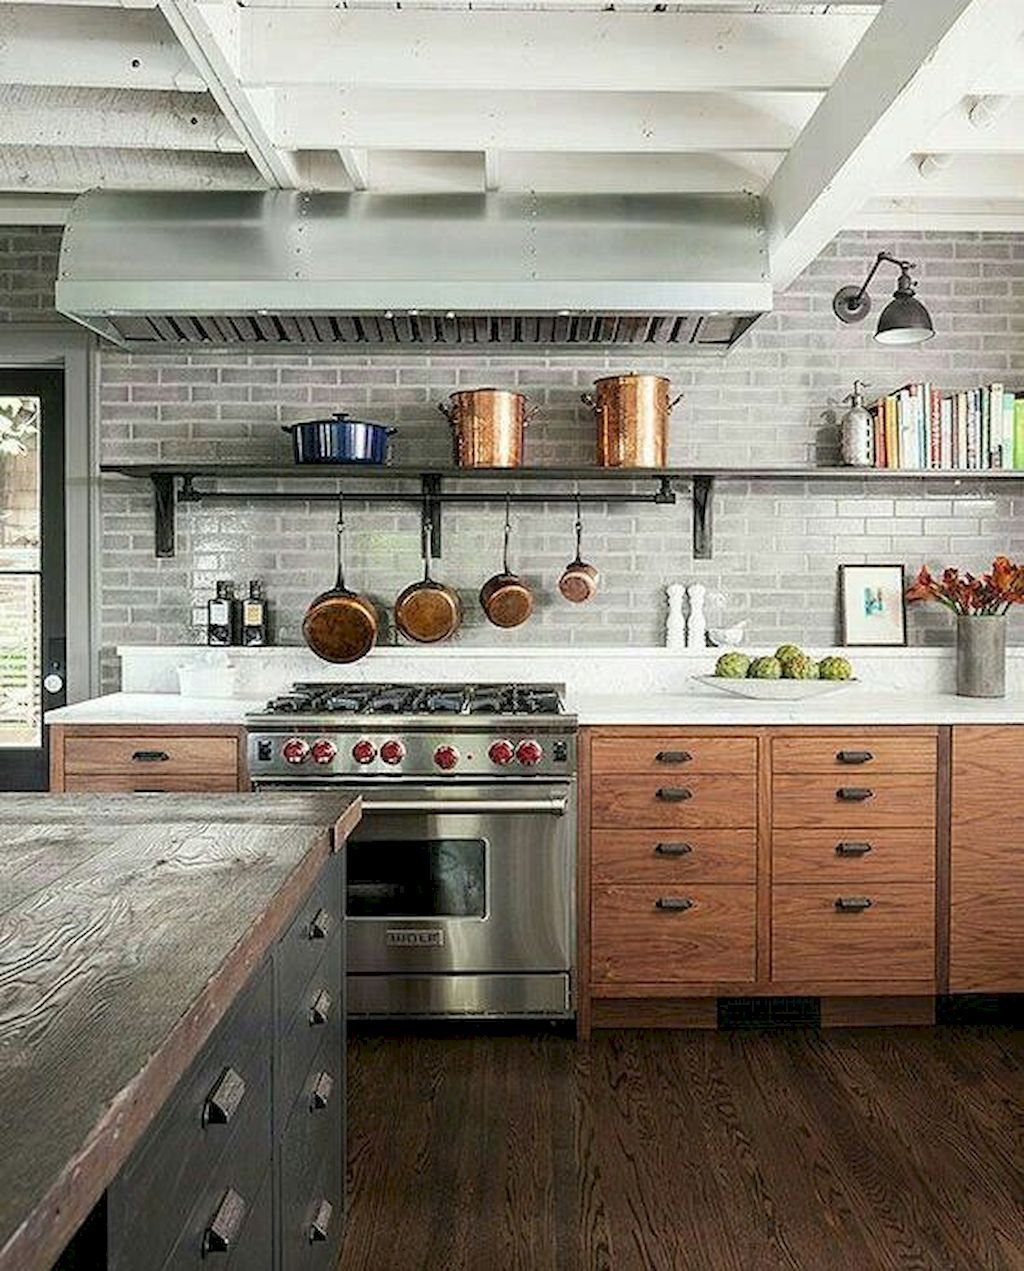 Awesome 60 Awesome Modern Kitchens Ideas Remodeling On A Budget Https Livingmarch Com 60 Aweso Rustic Modern Kitchen Industrial Kitchen Design Rustic Kitchen